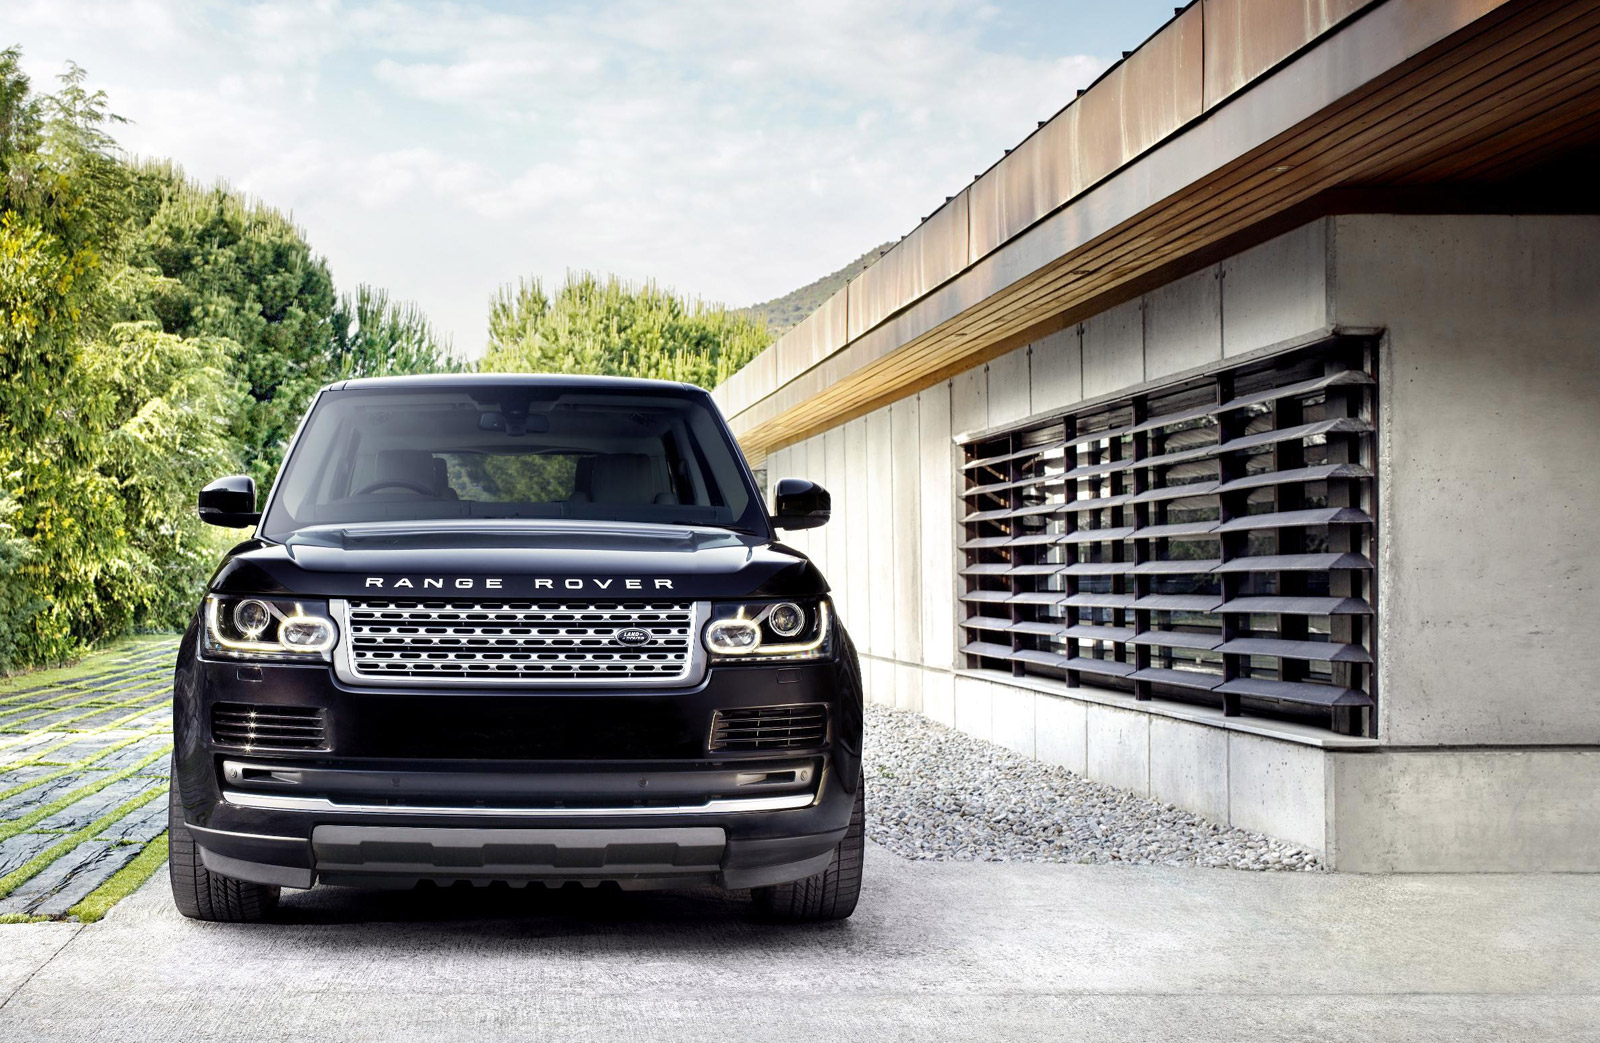 Land Rover Atlanta >> 2013-2014 Land Rover Range Rover Recalled For Airbag System Flaw